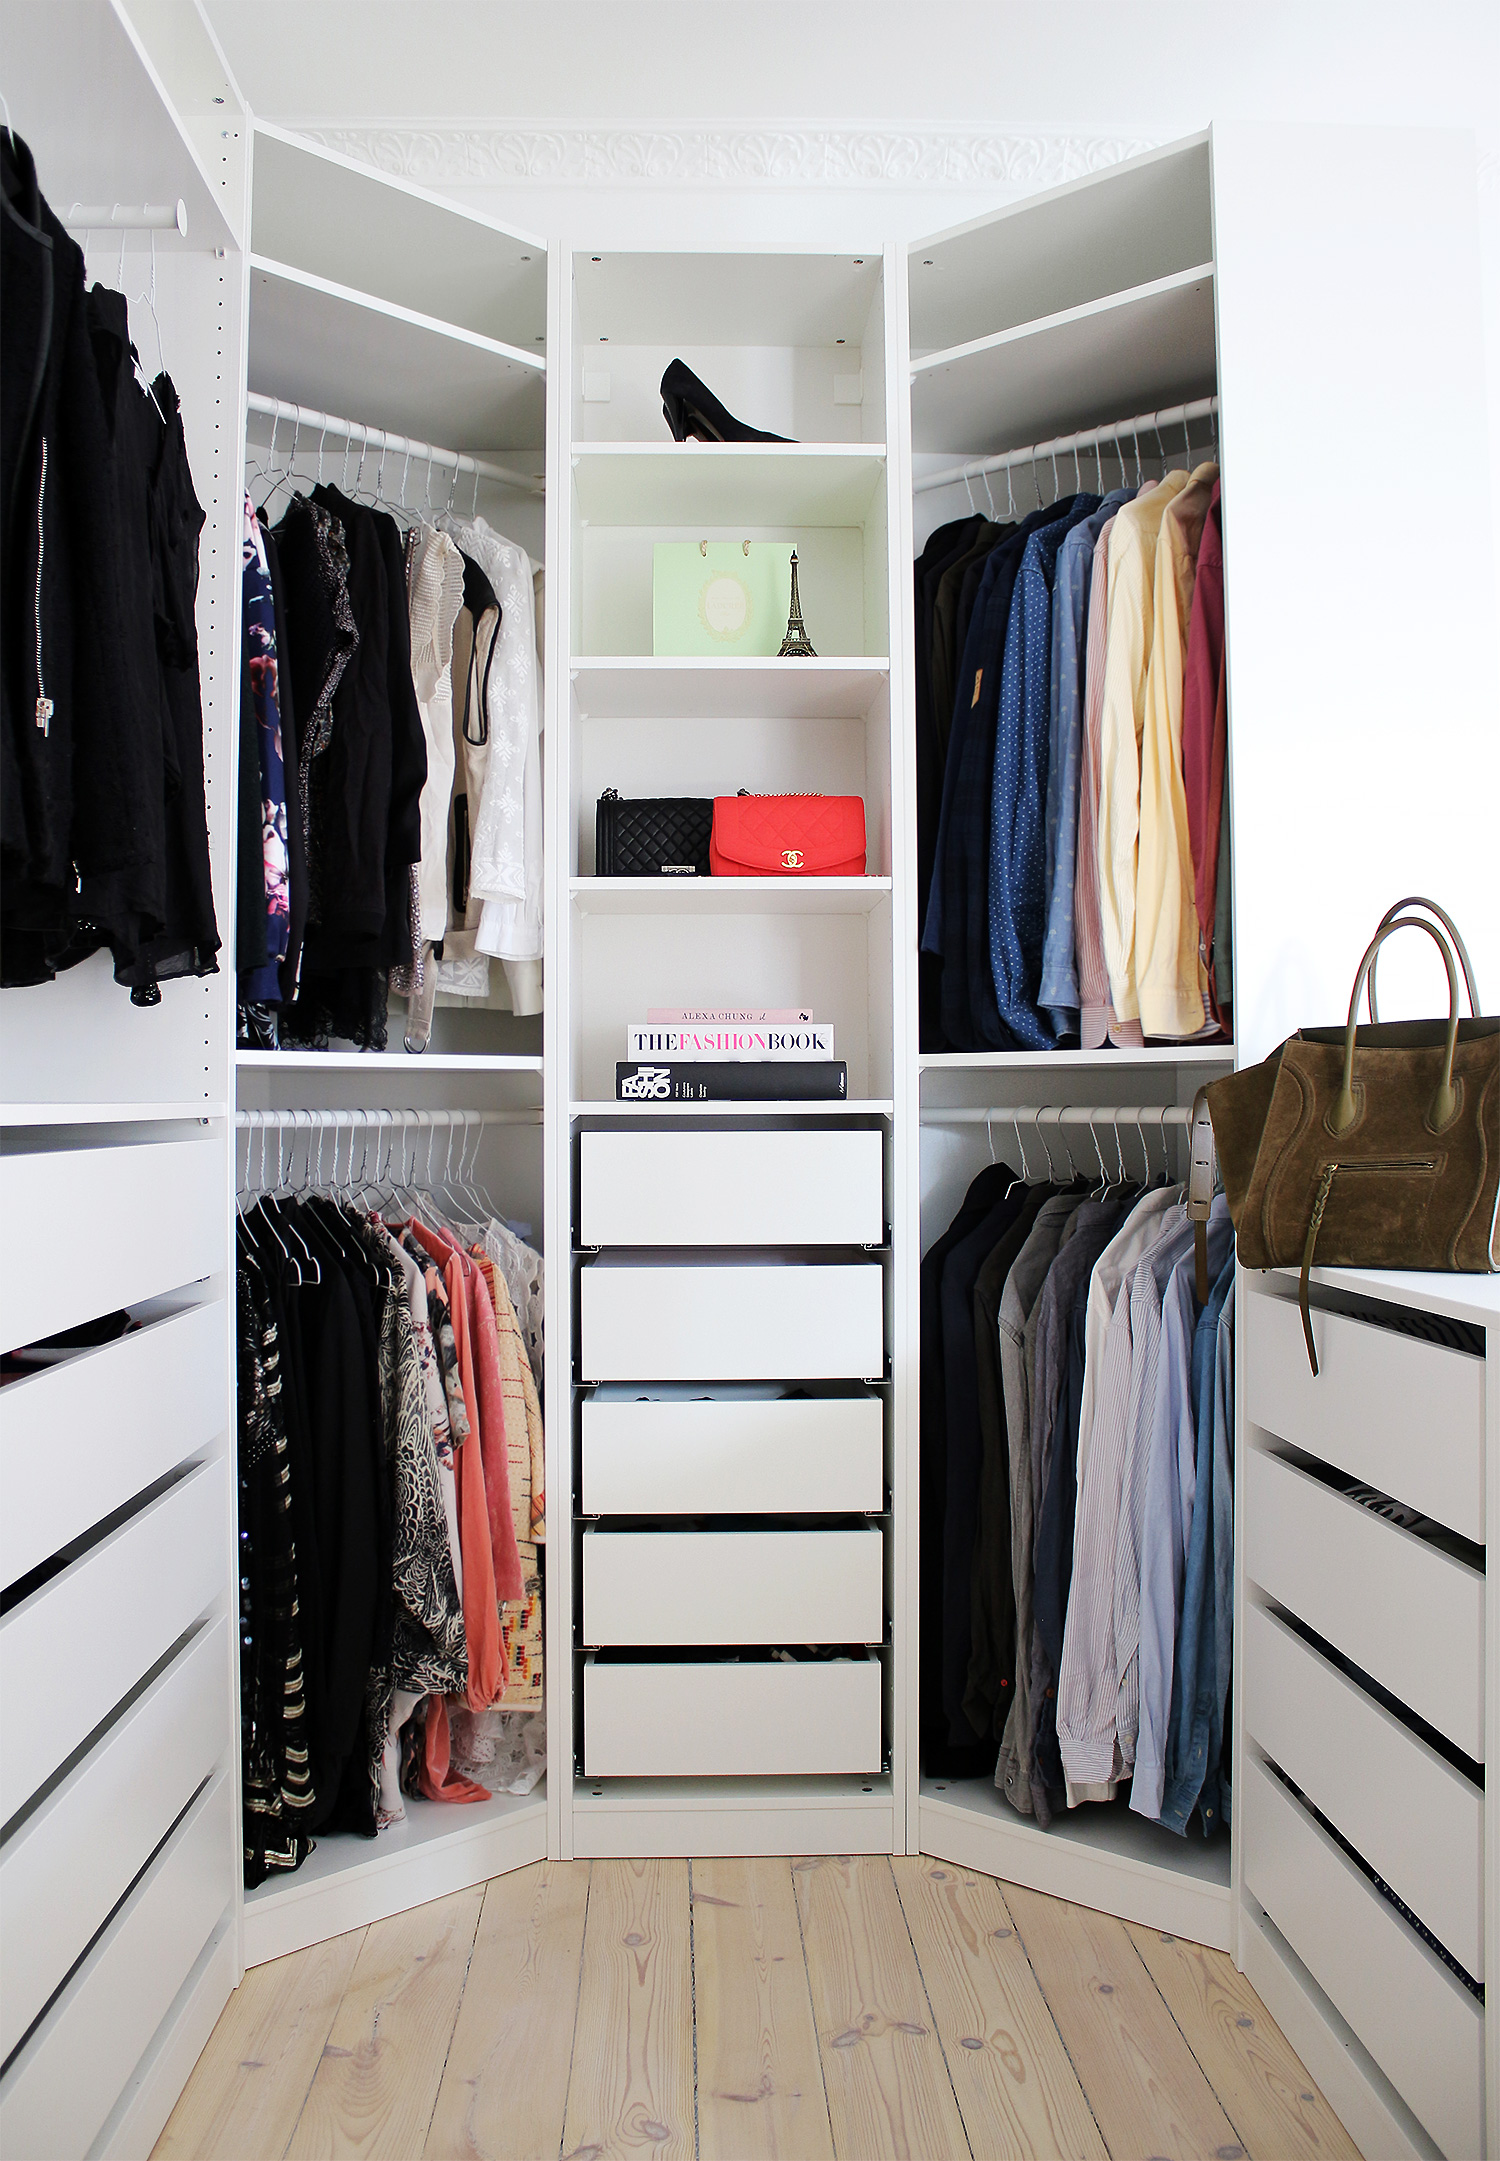 ikea pax system used for a walk in closet